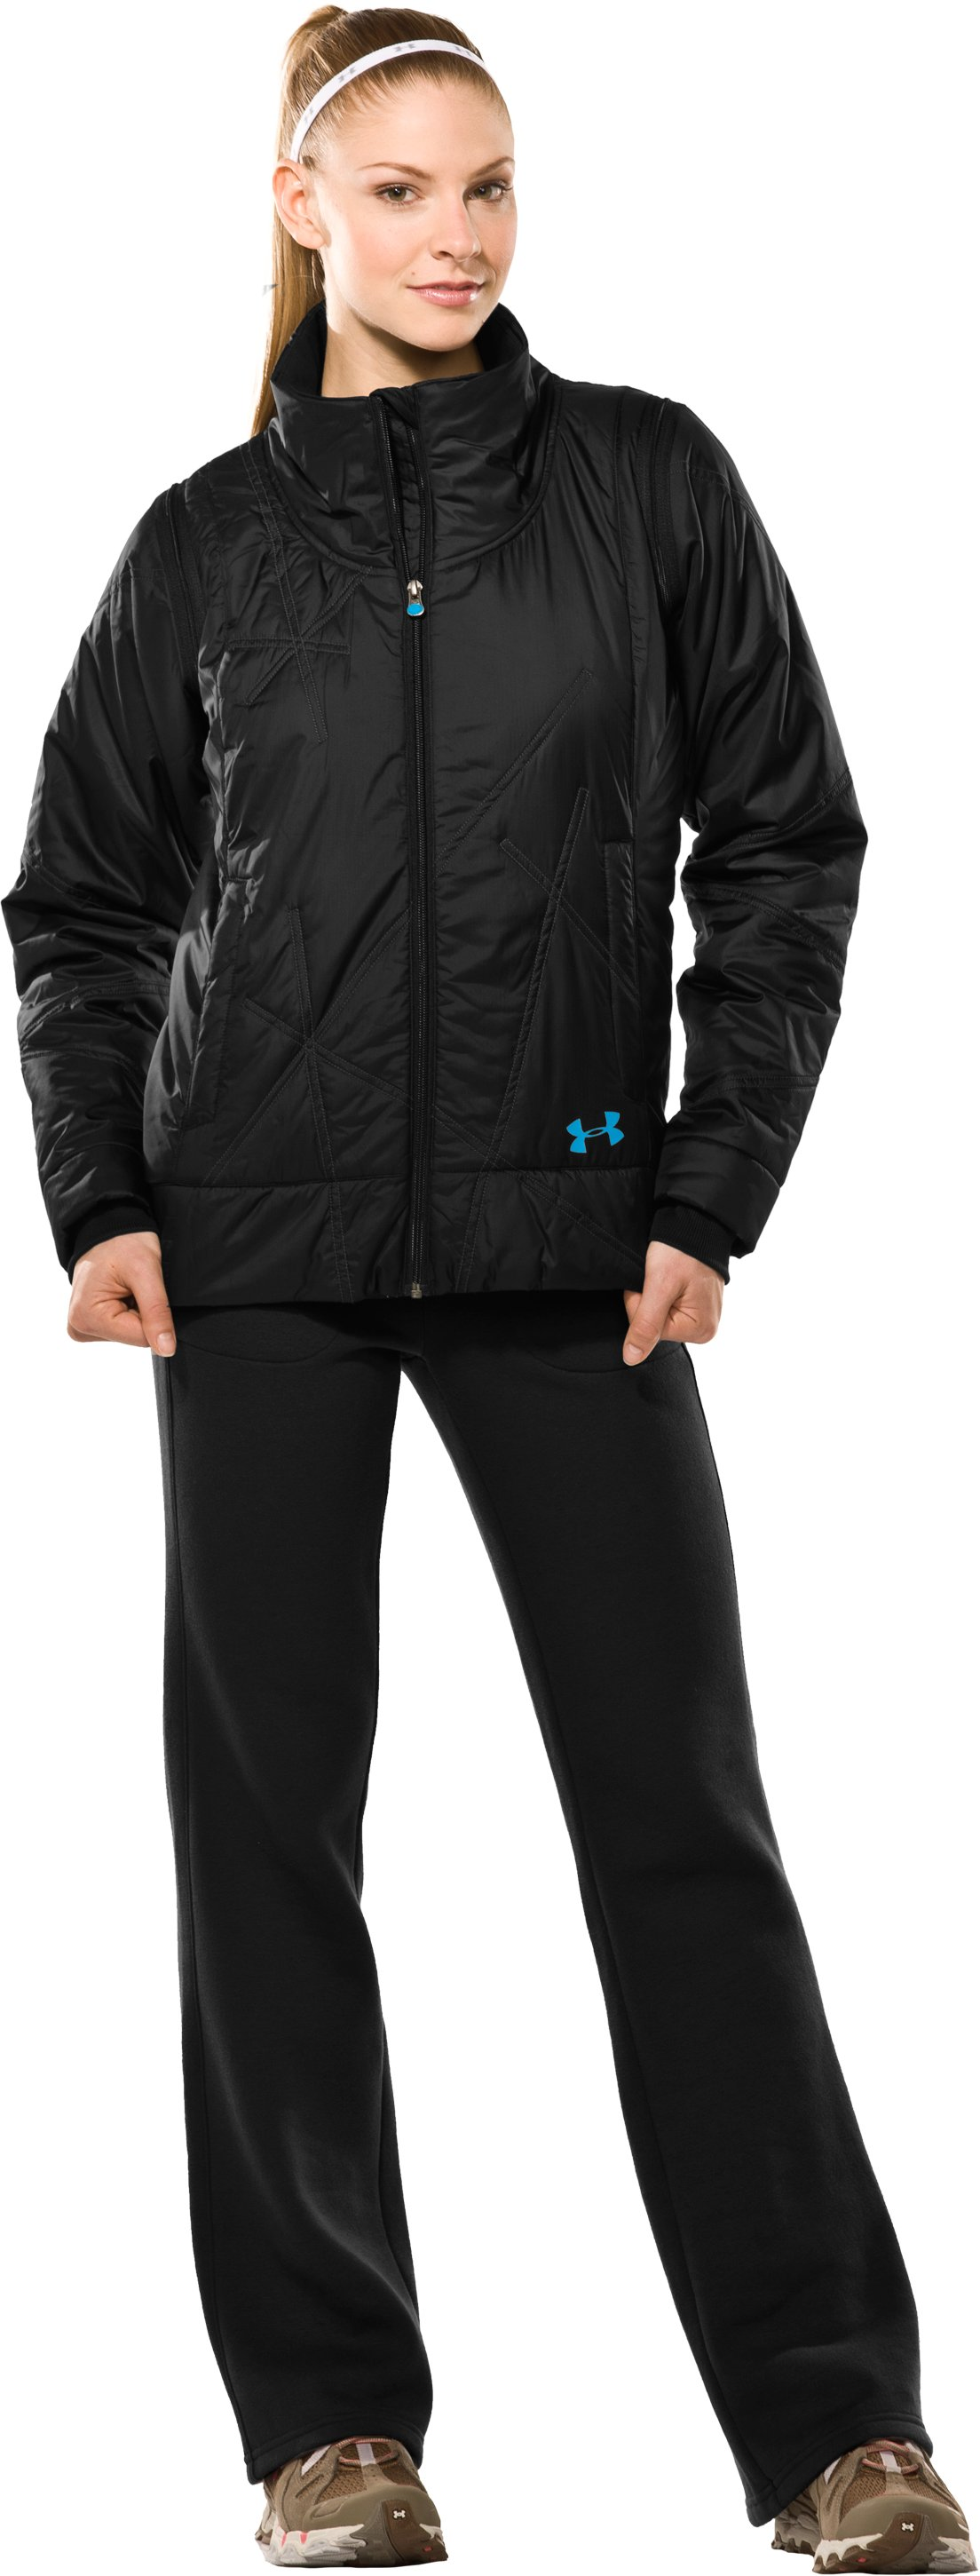 Women's Choice ArmourLoft® Jacket II, Black